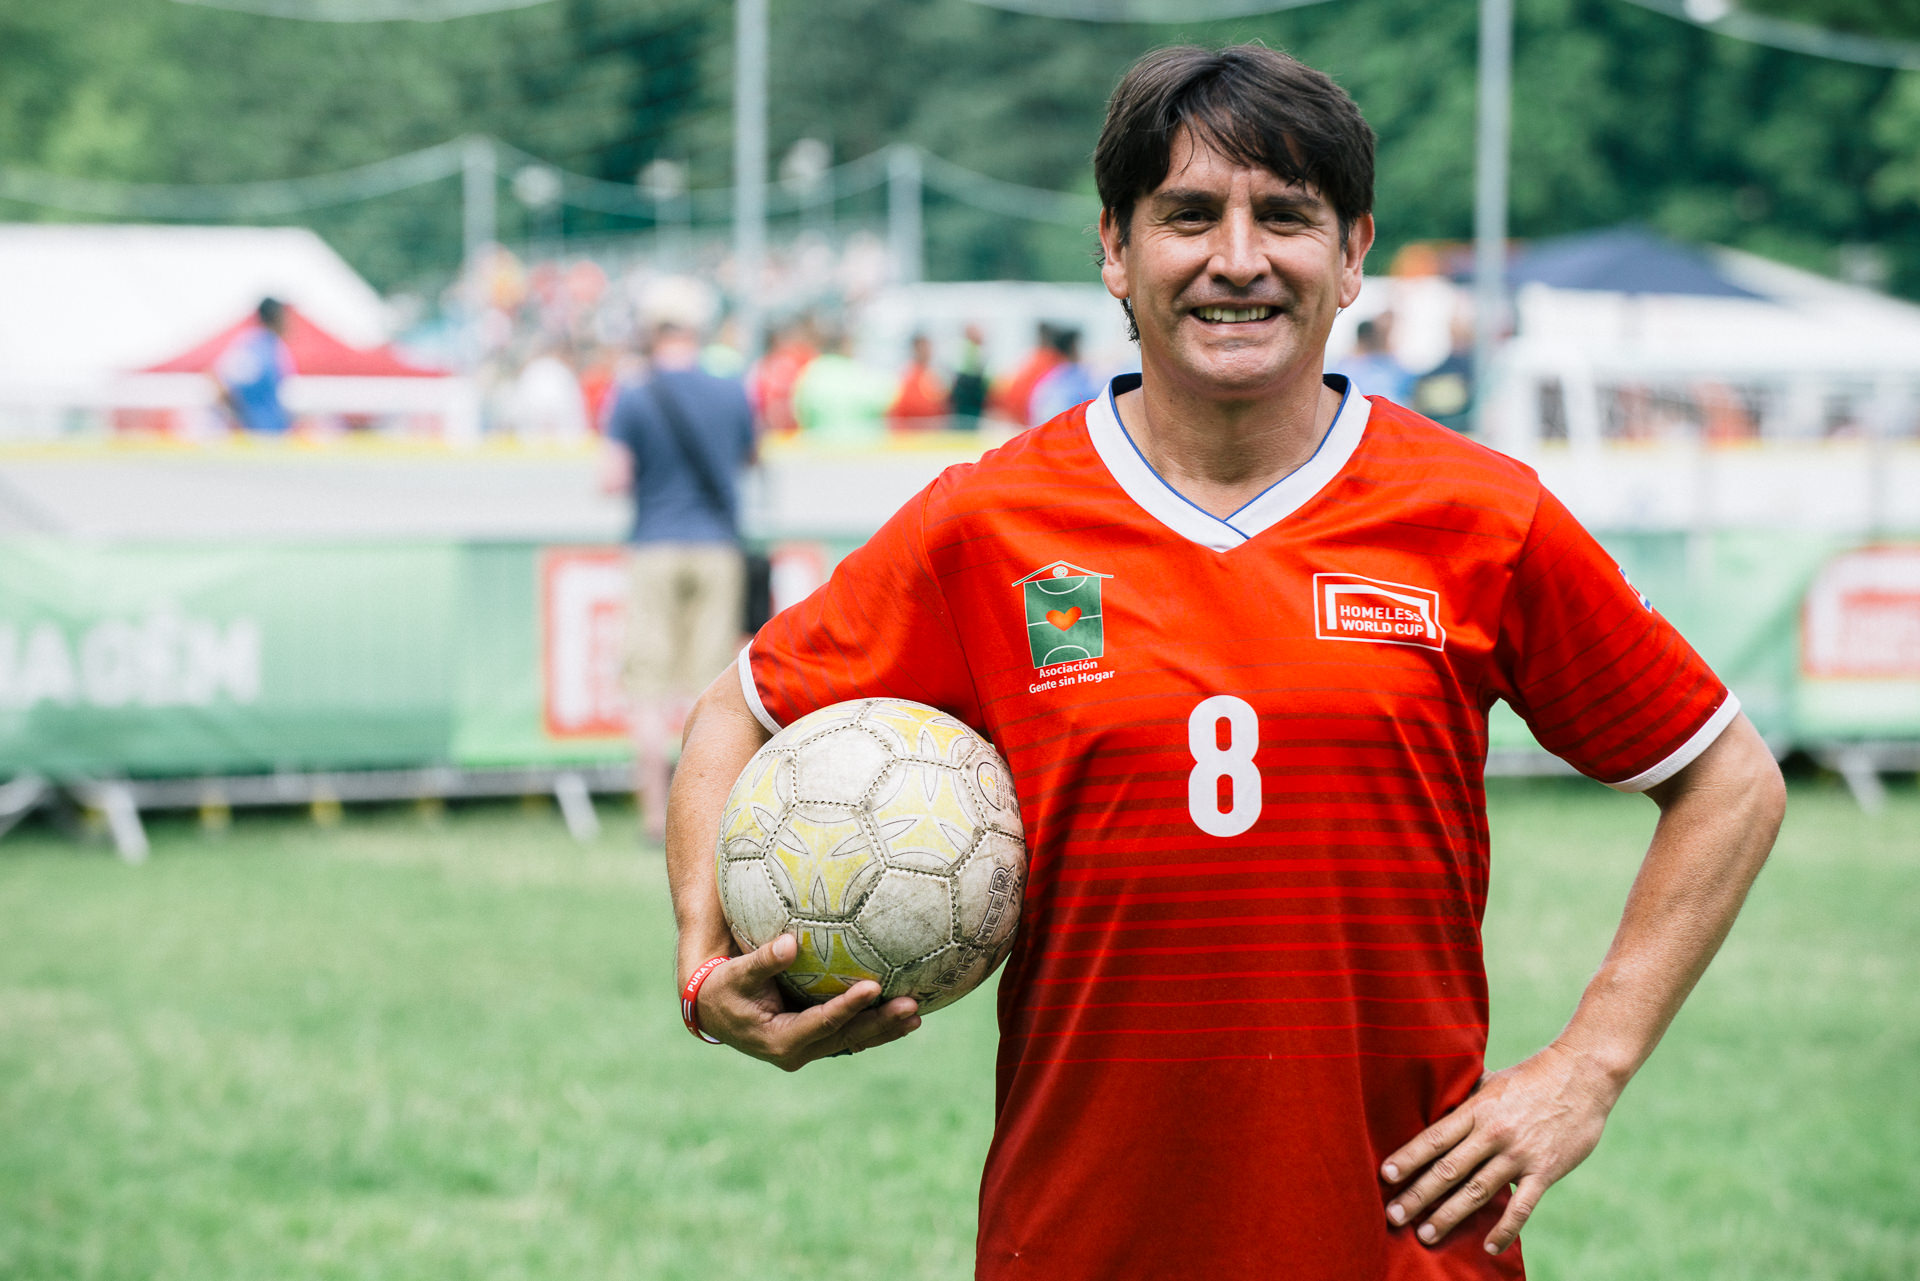 homeless world cup cardiff 2019 player